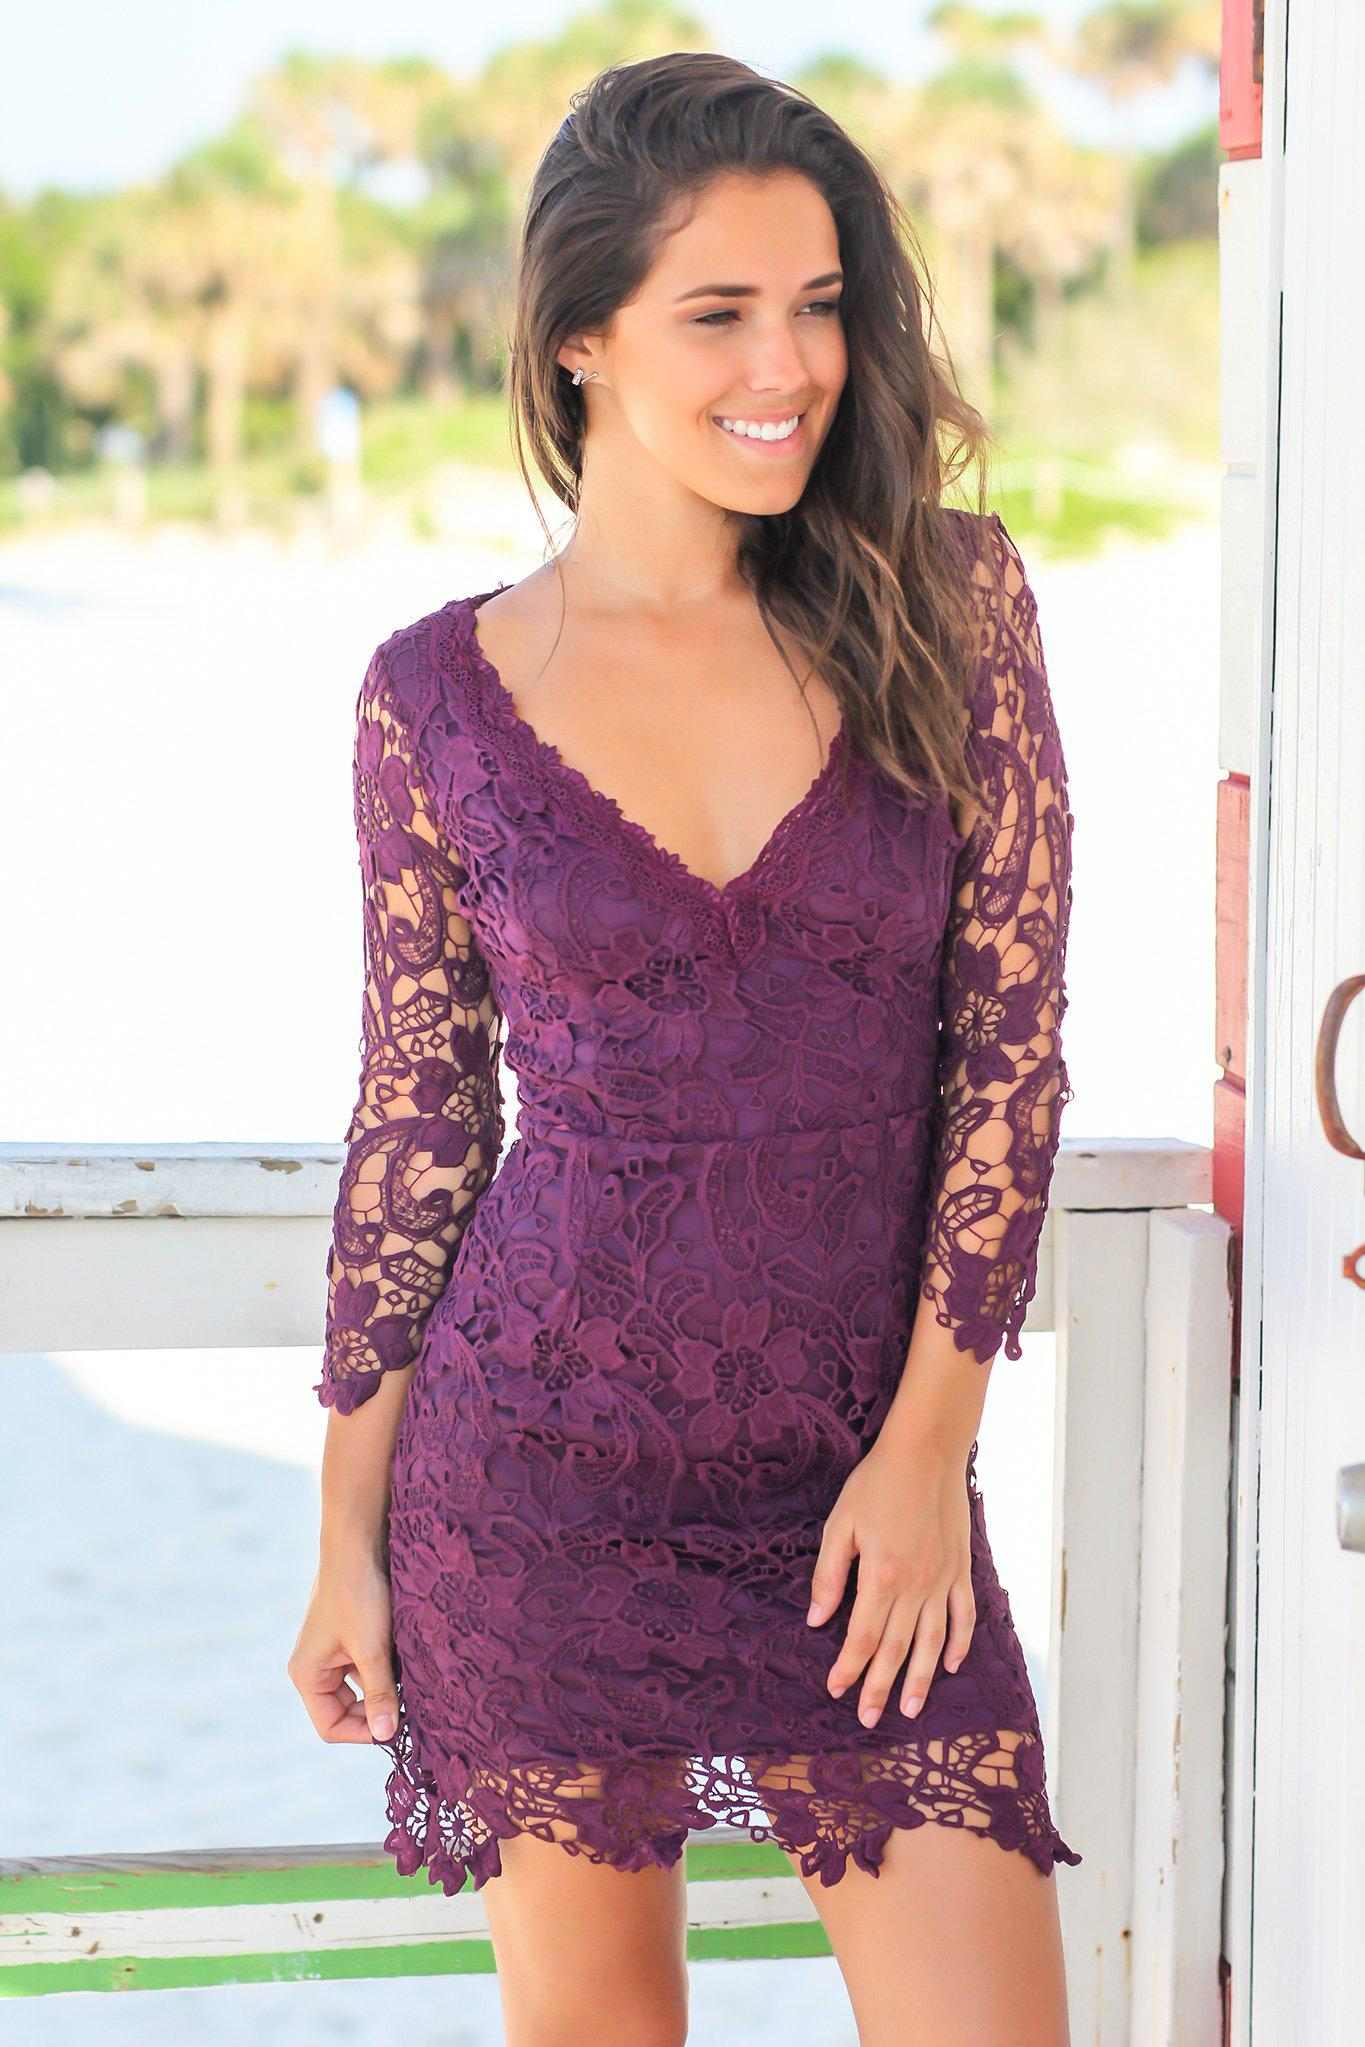 Eggplant Crochet V-Neck Short Dress with 3/4 Sleeves